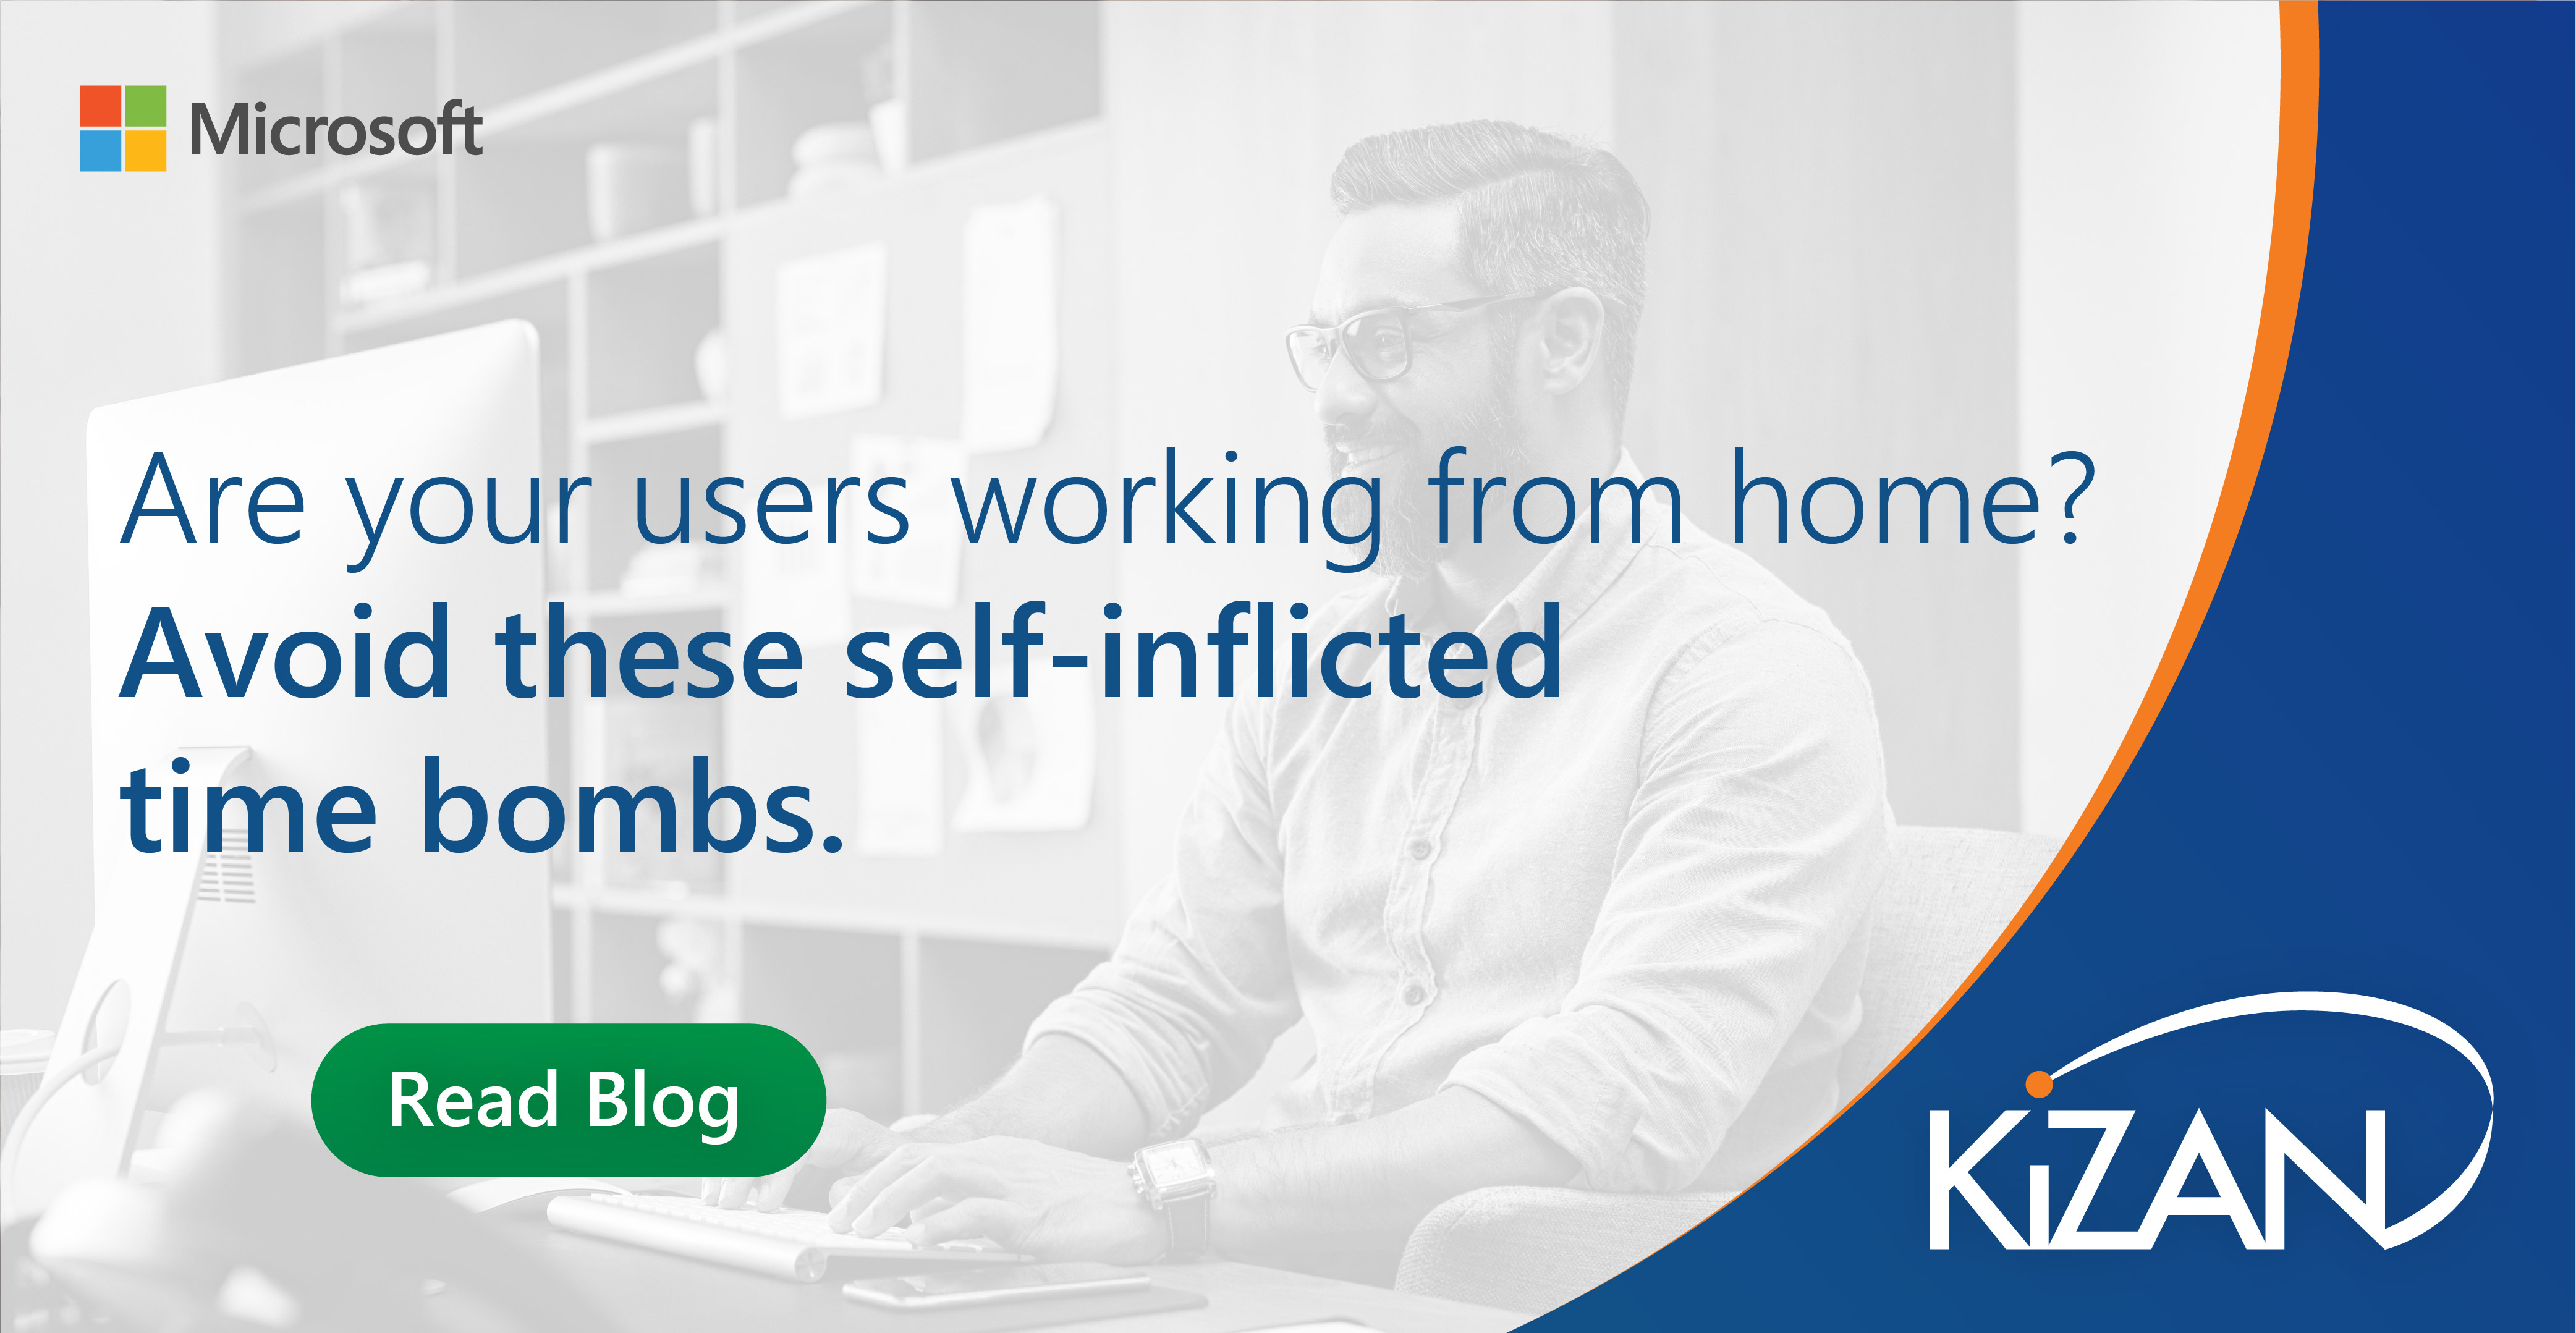 Are your users working from home? Avoid these self-inflicted time bombs.